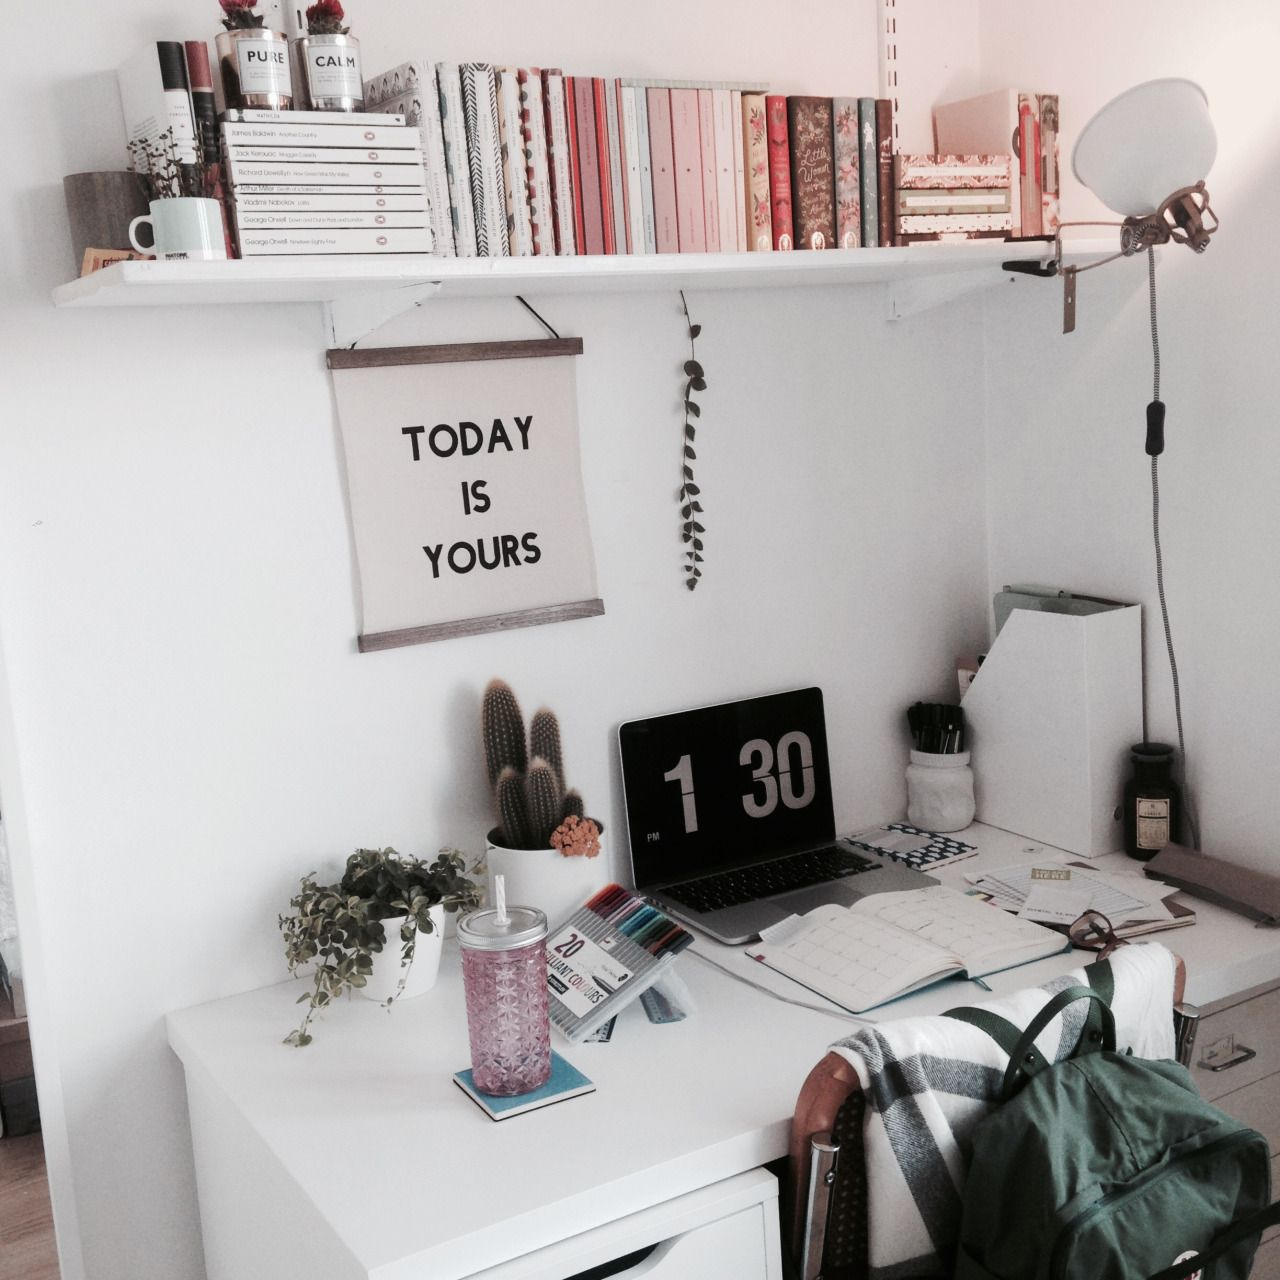 Bedroom Desk Tumblr Pinterest Mylittlejourney Tumblr Toxicangel